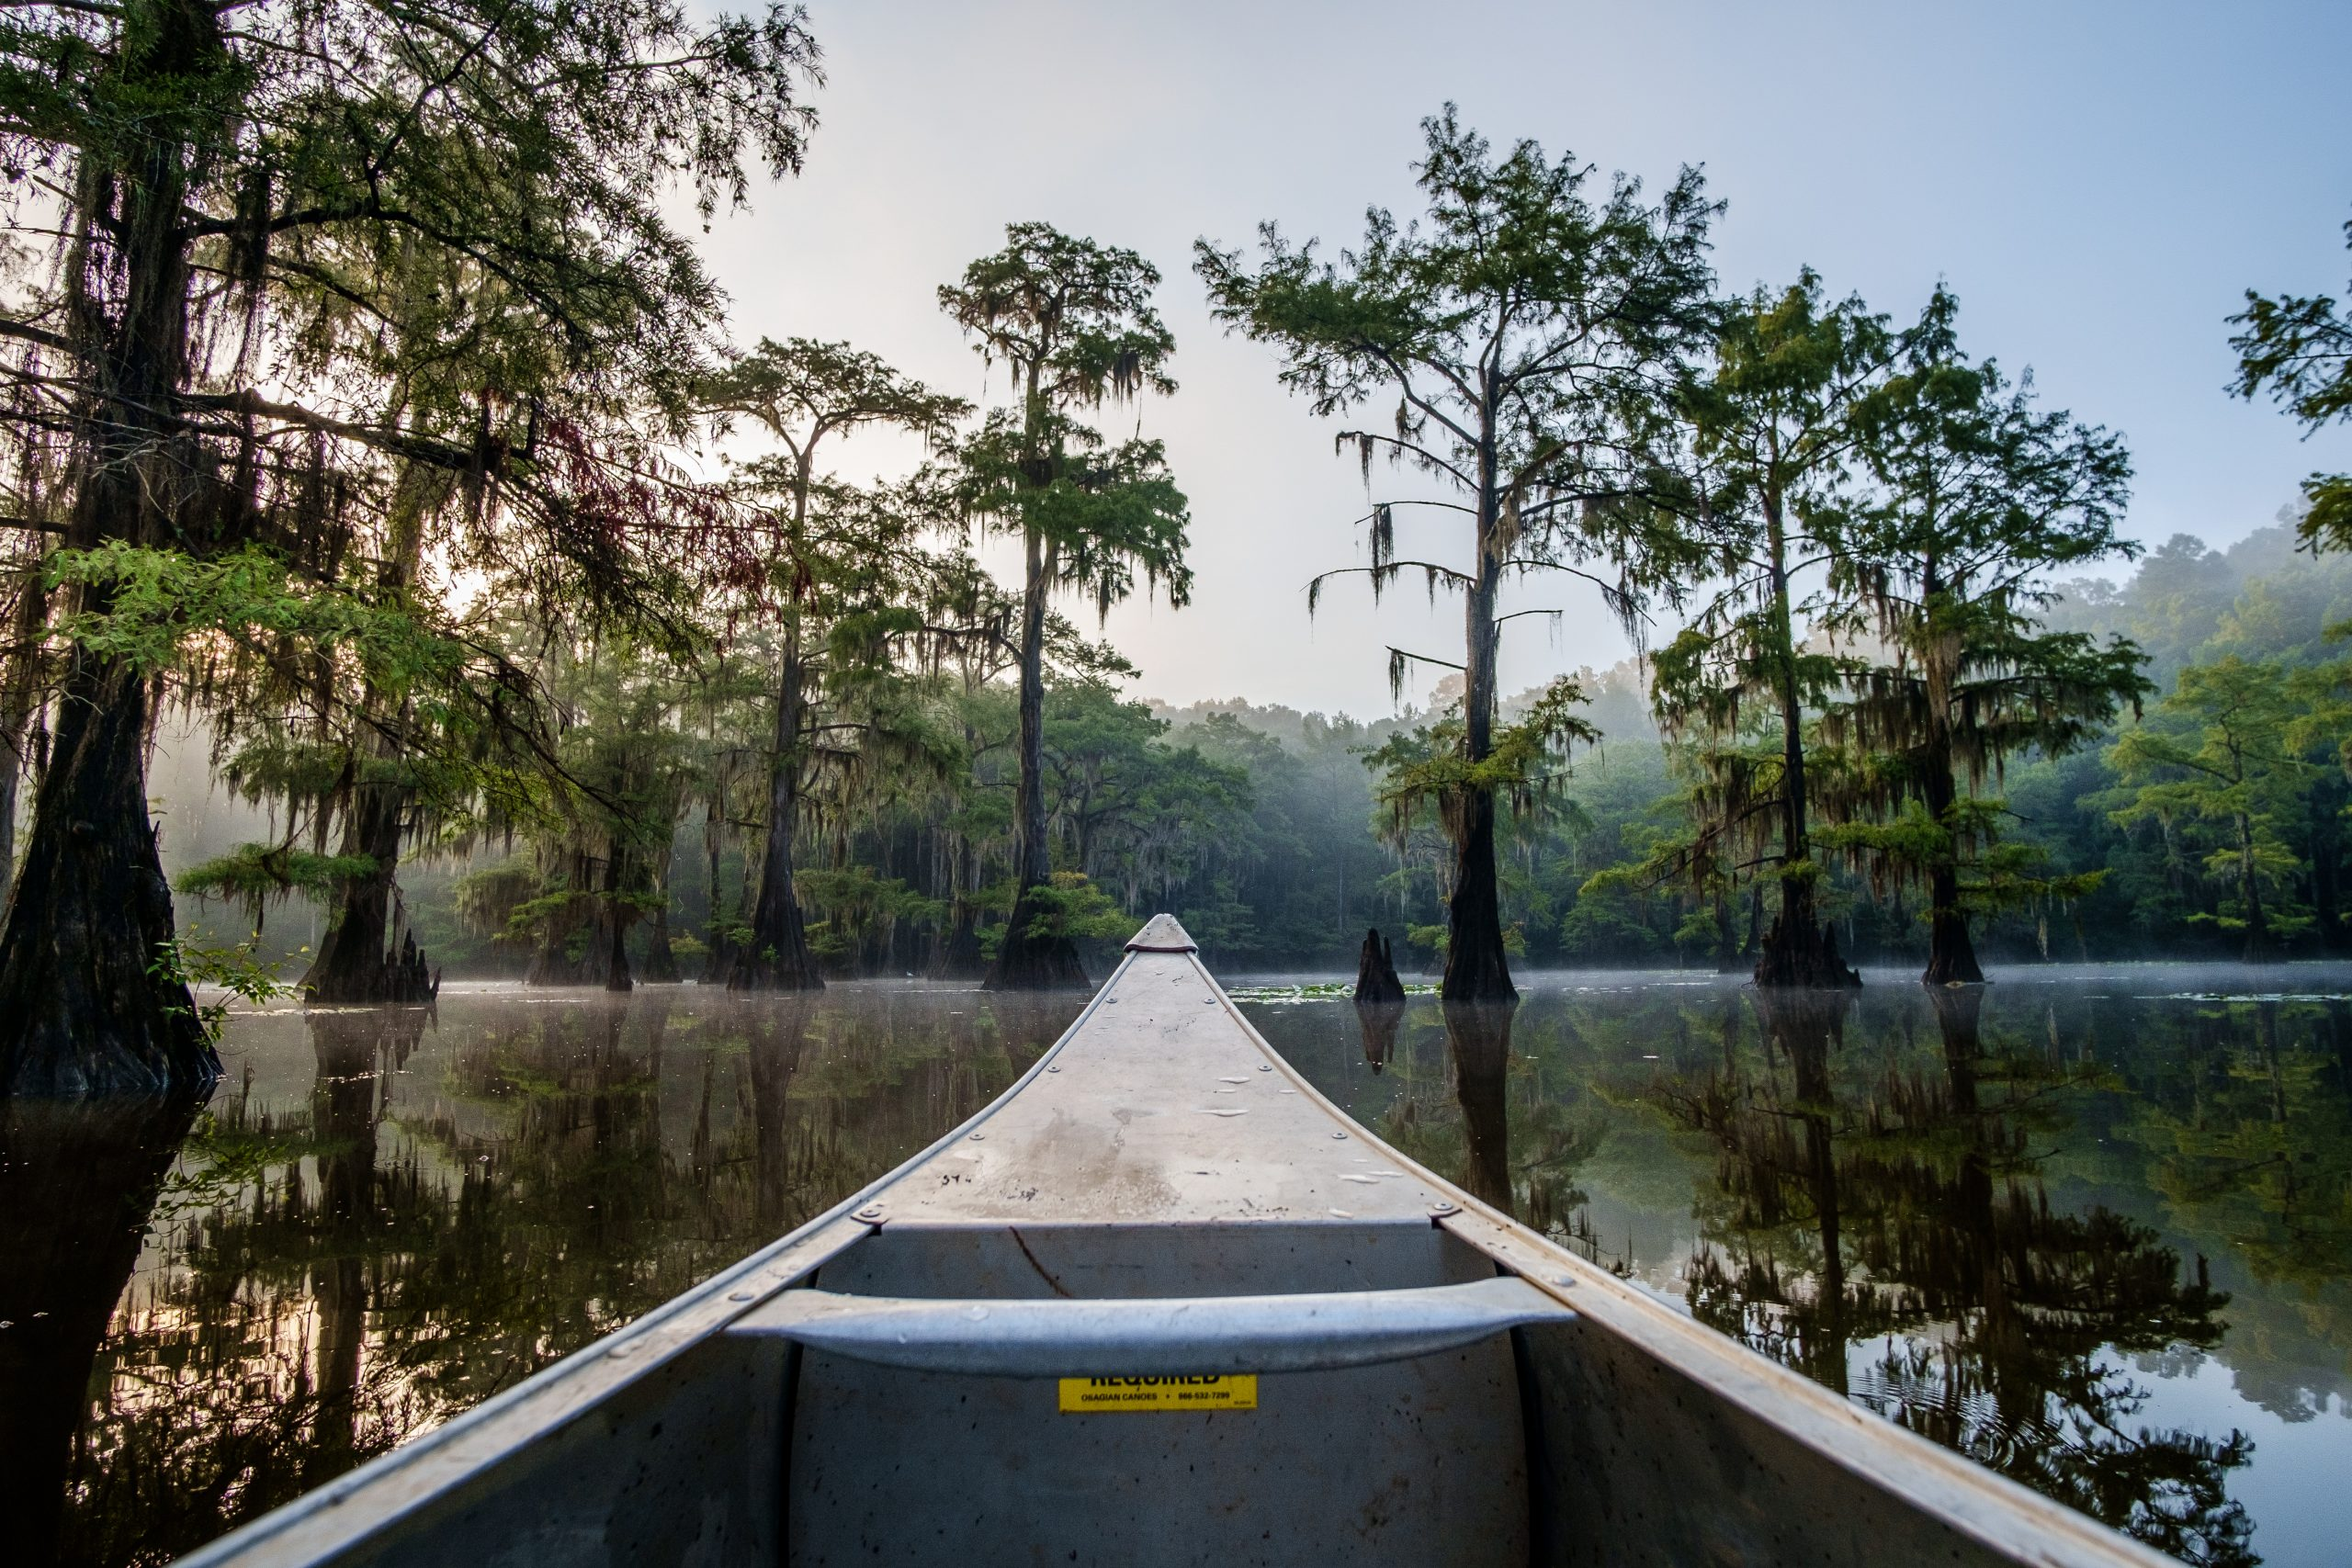 front end of a gray canoe in caddo lake, one of the best east texas state parks